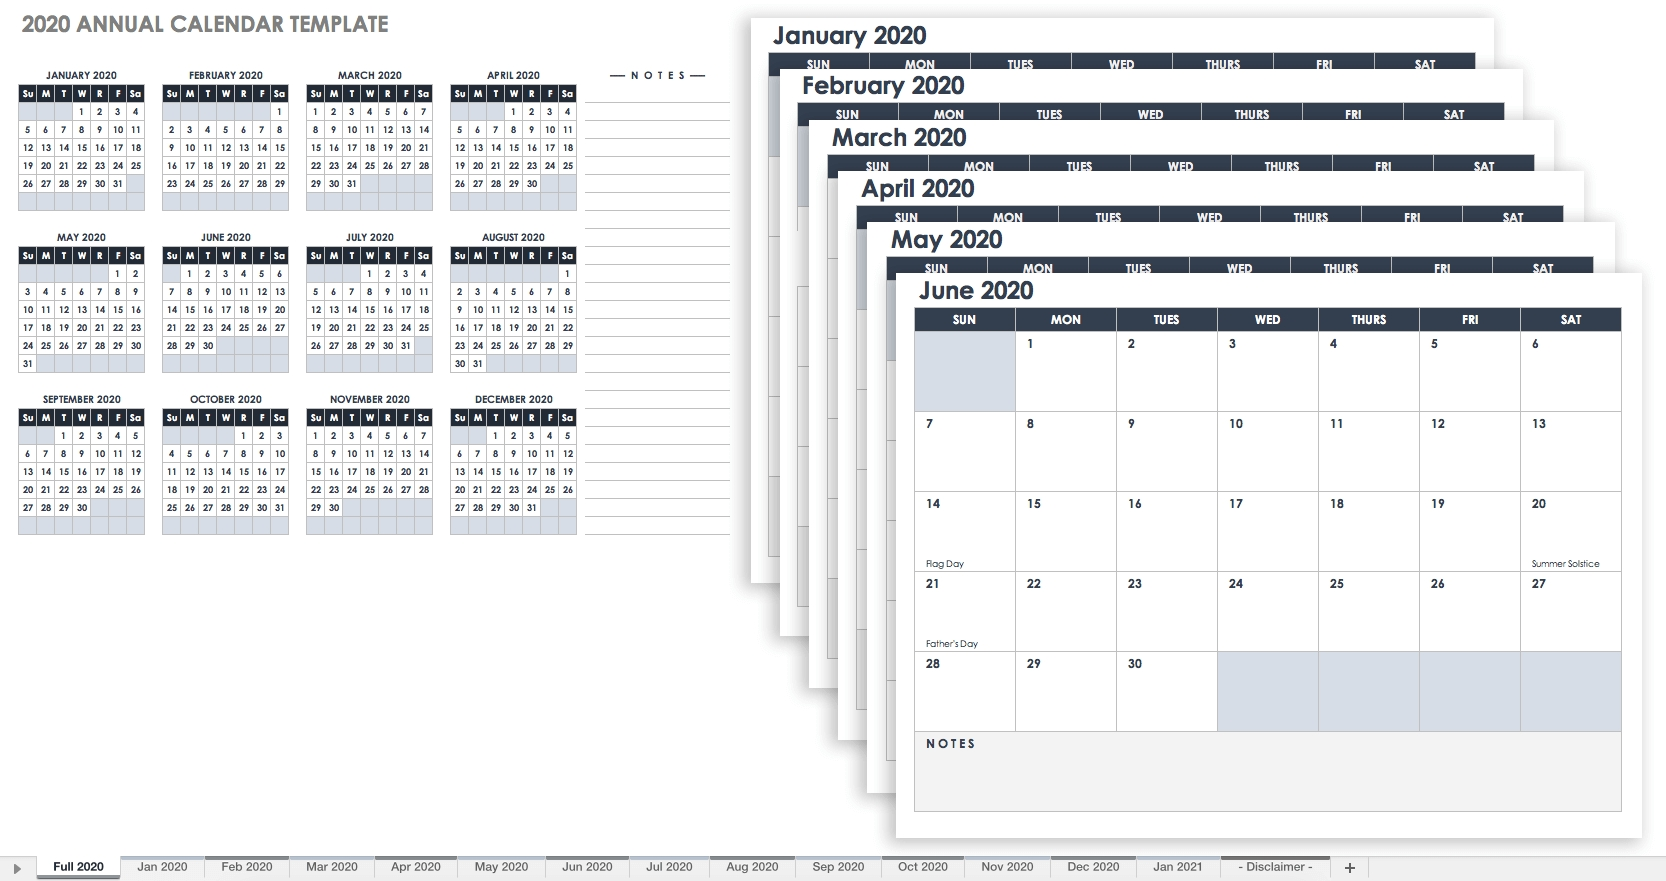 Free, Printable Excel Calendar Templates For 2019 & On | Smartsheet for 2019 And 2020 Calendar Template Fill In